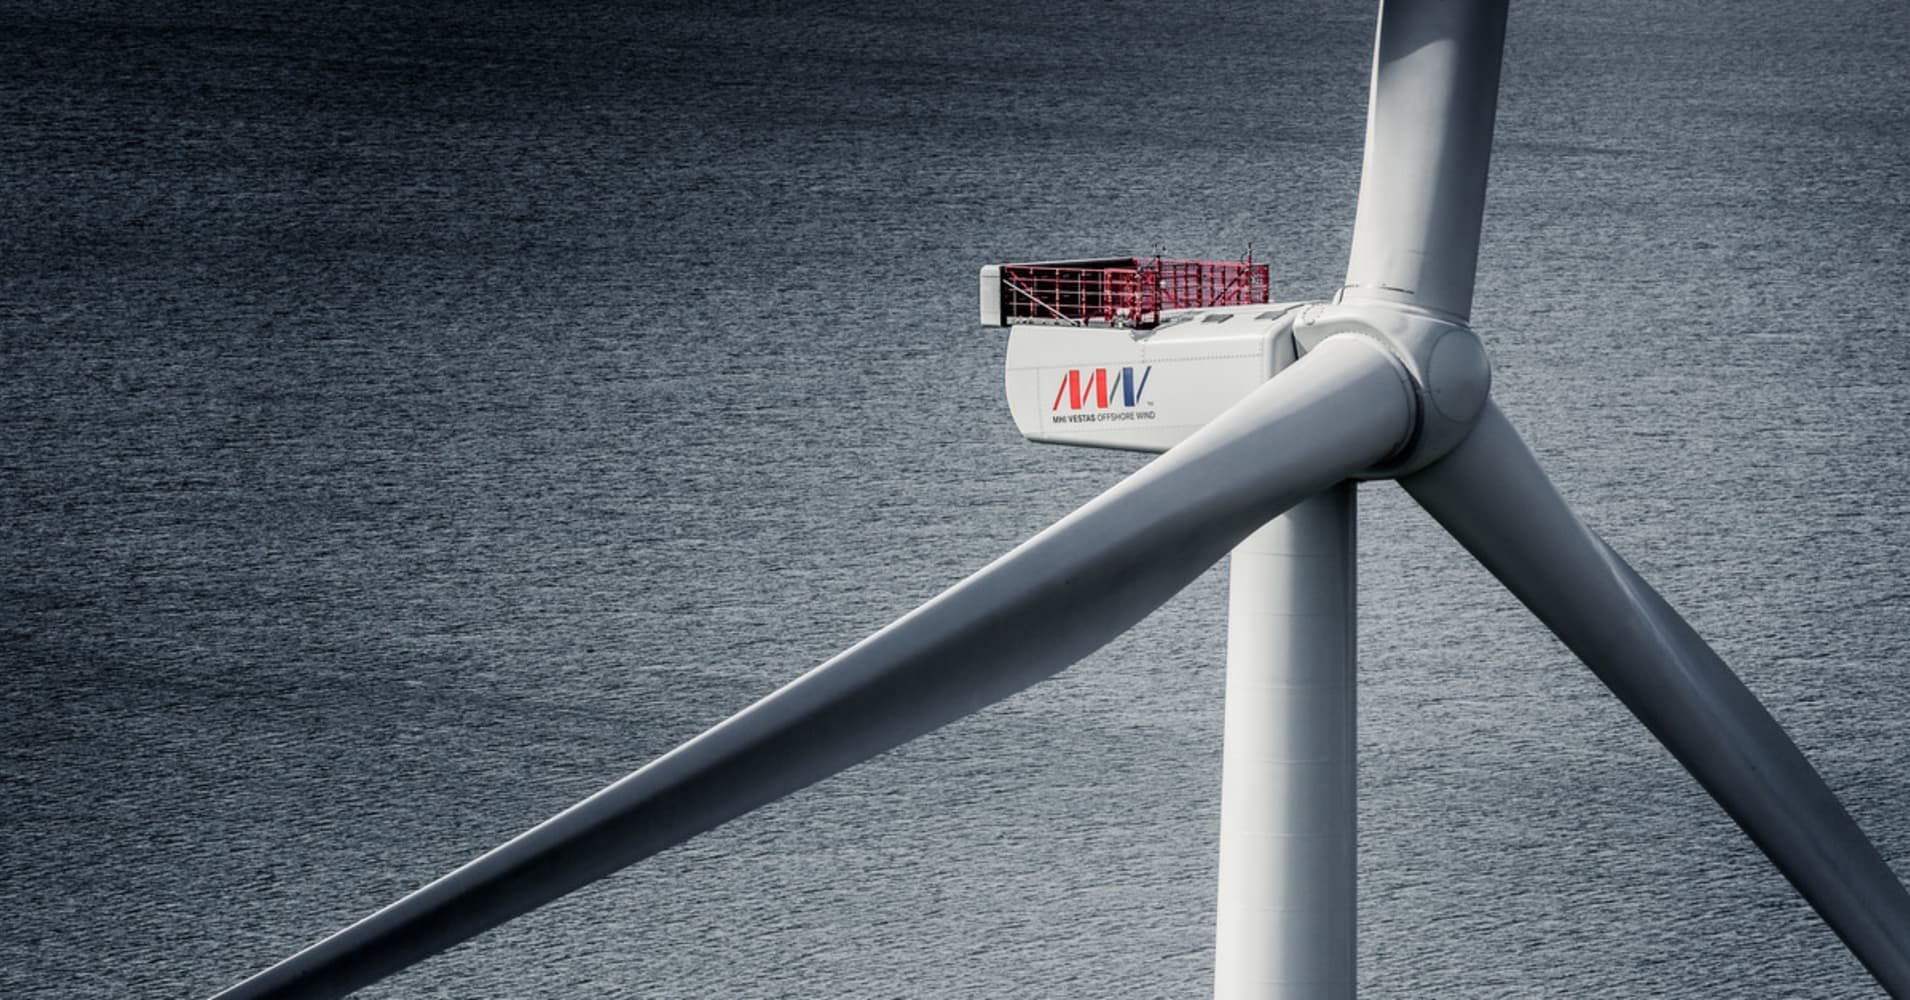 MHI Vestas claims industry first as it unveils huge wind turbine